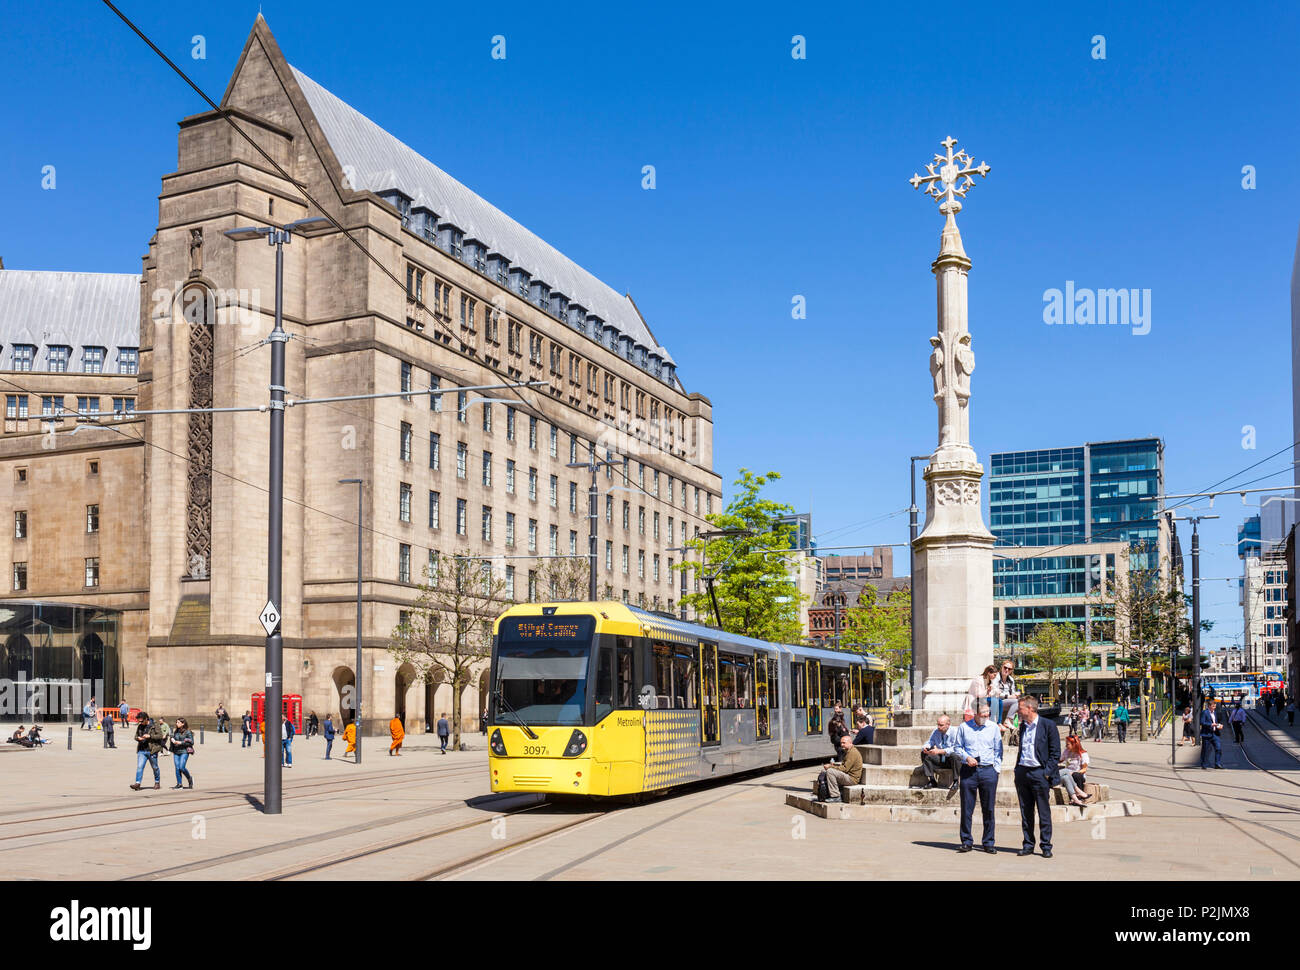 England Manchester England greater Manchester City centre city center manchester tram on st peters square manchester uk - Stock Image